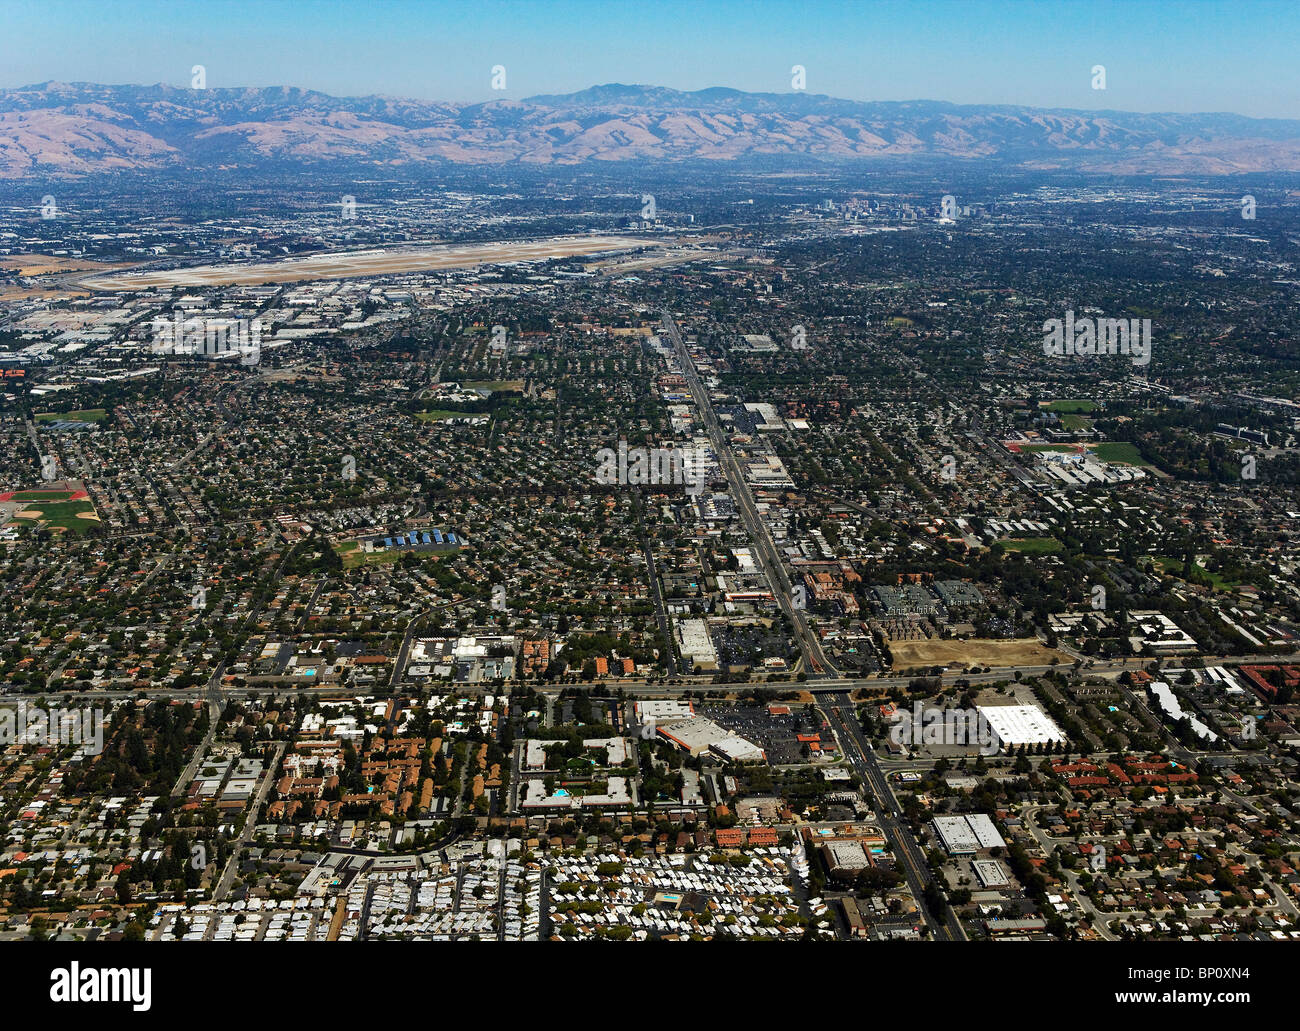 aerial view above Silicon Valley toward San Jose airport and downtown San Jose - Stock Image